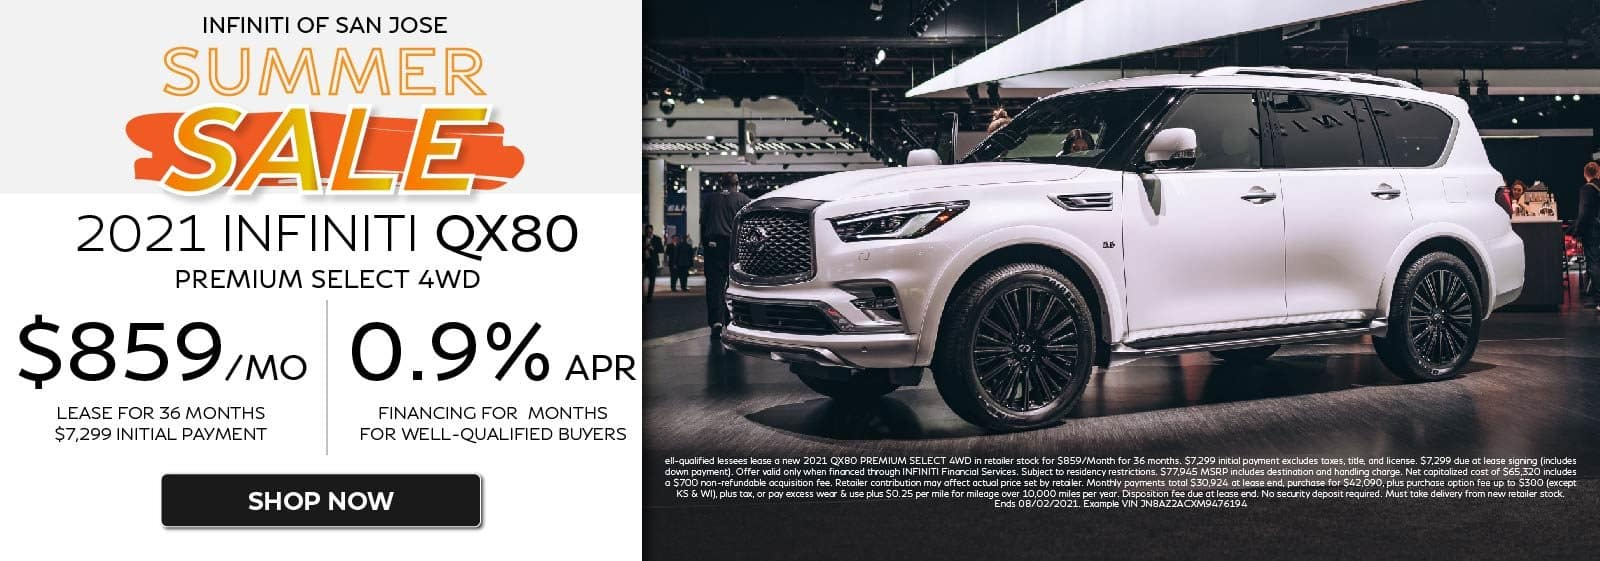 2021 QX80 PREMIUMSELECT 4WD AWD $859/mo for 36 months 0.9%APR